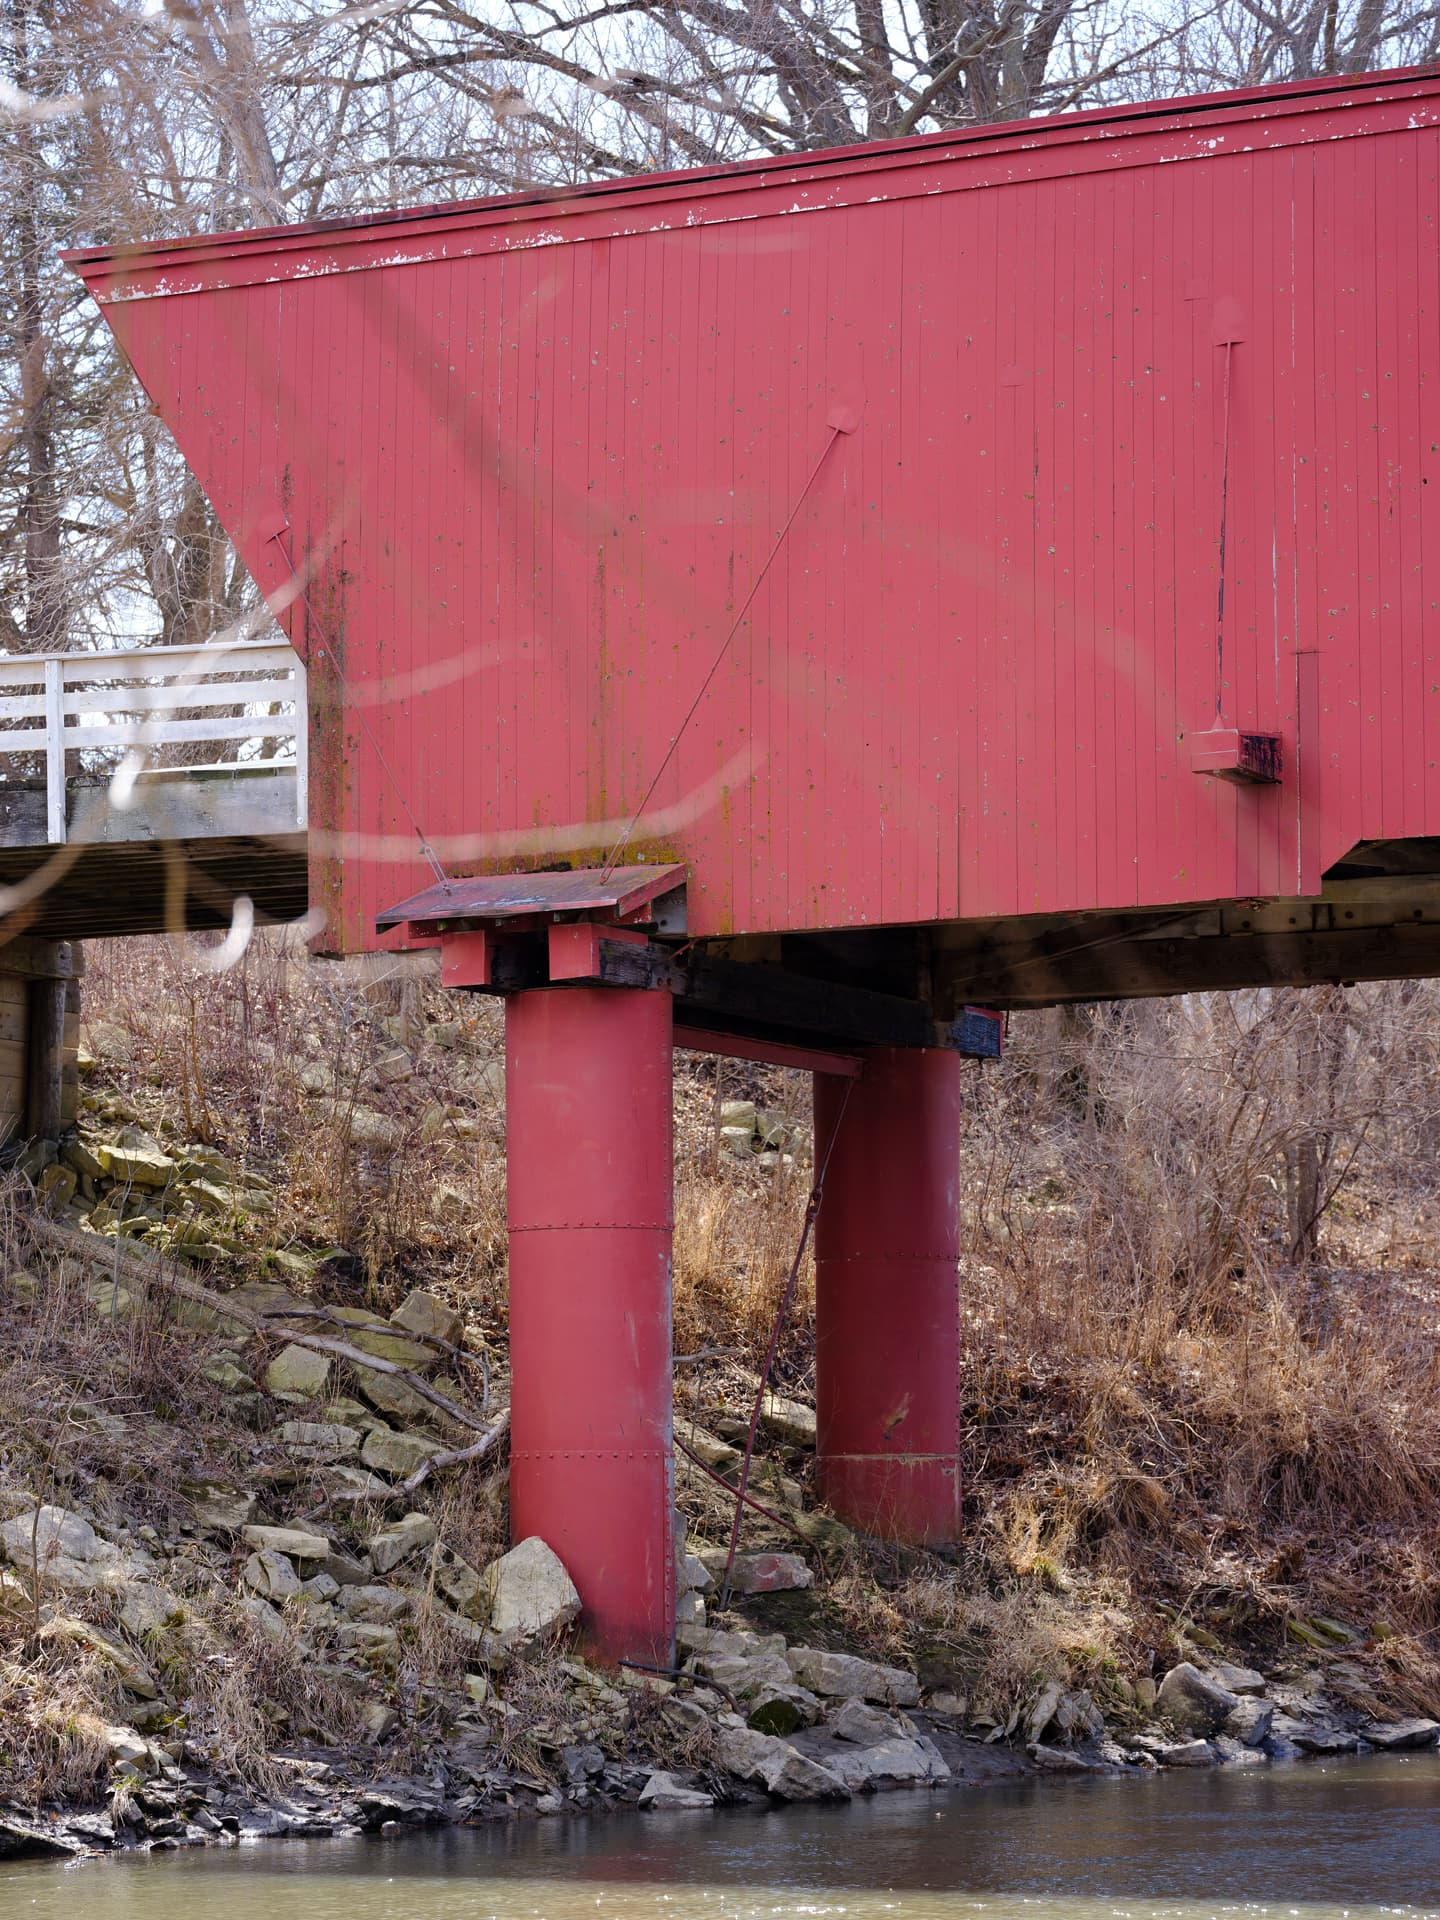 Close up with red covered bridge pillars over rocky creek